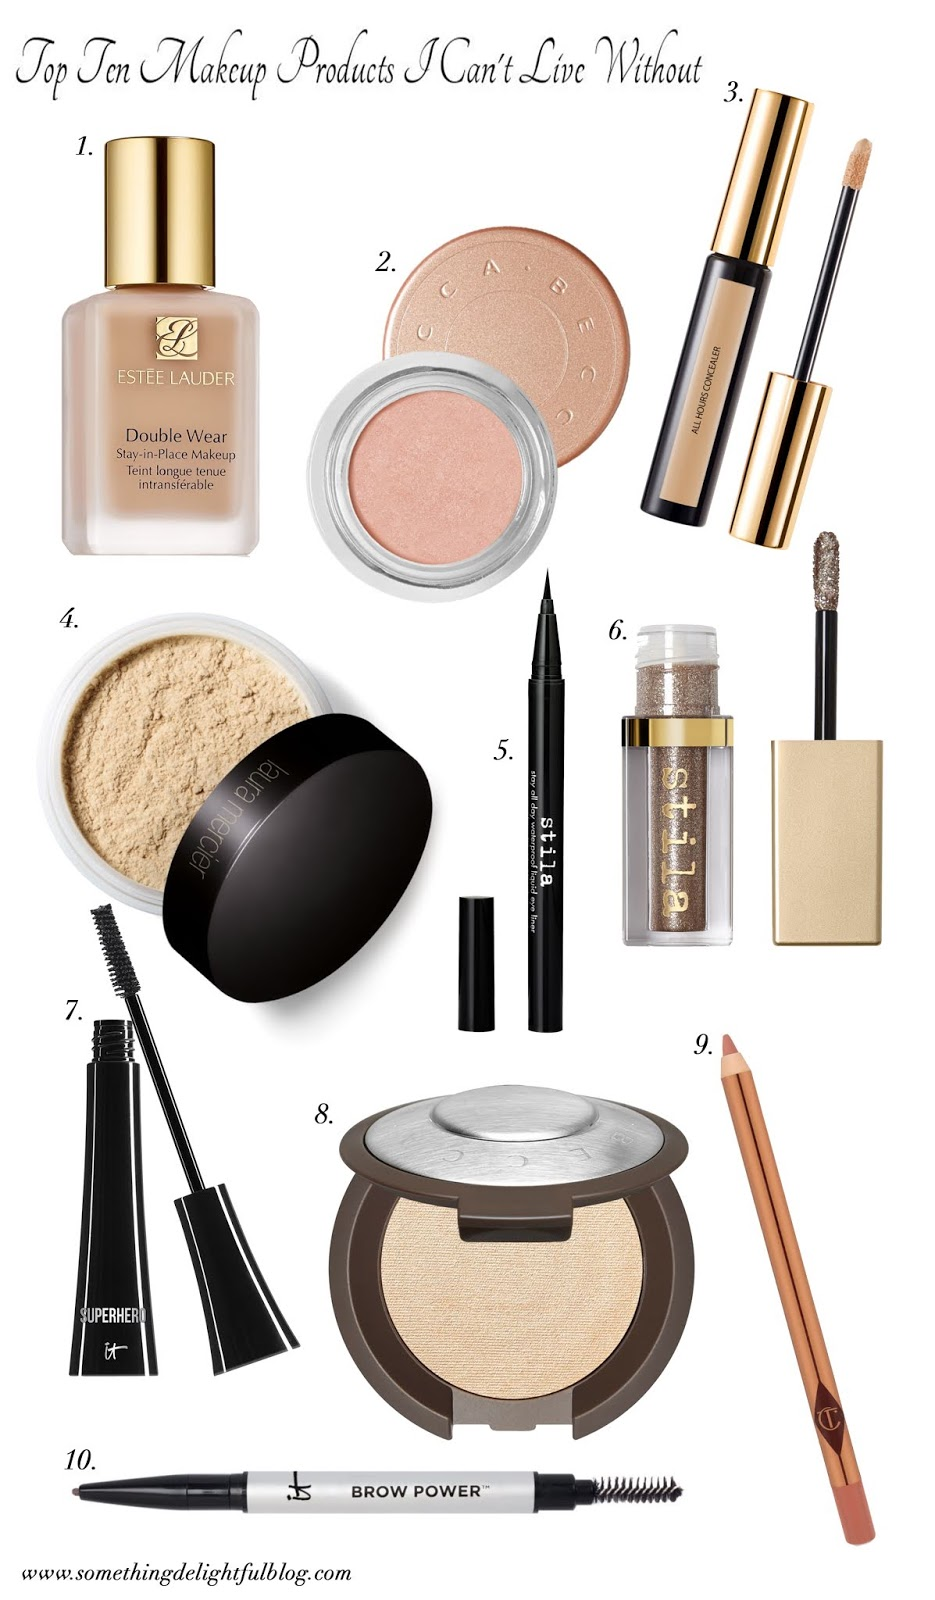 Sephora Beauty Insider Event: Ten Makeup Products I Can't Live Without - Something Delightful Blog